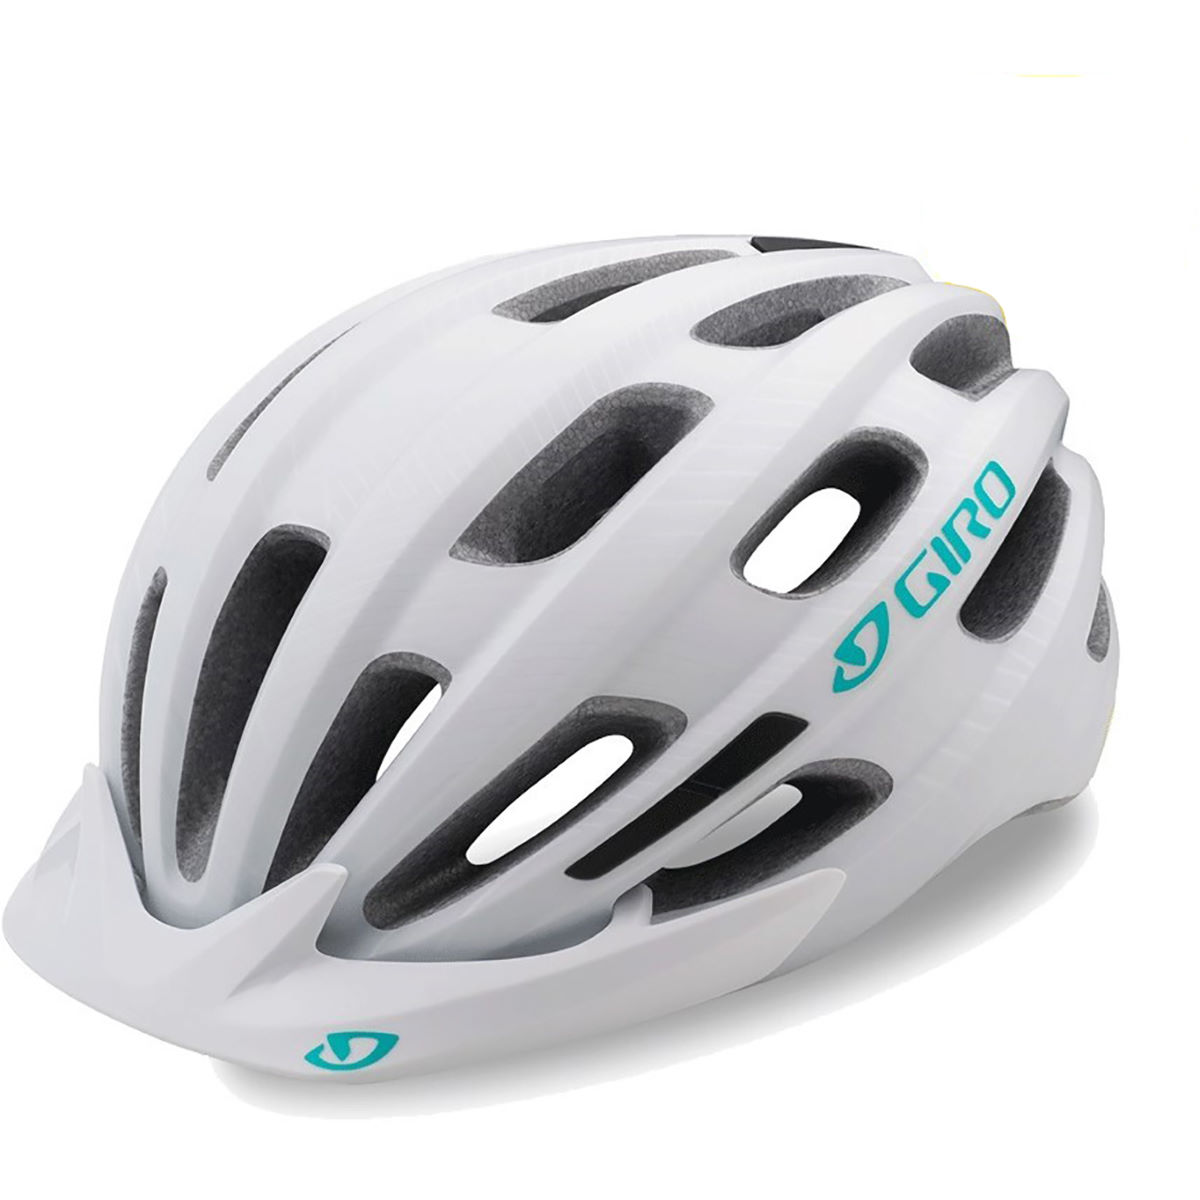 Image of Casque de route Femme Giro Vasona MIPS - One Size White/Silver 19